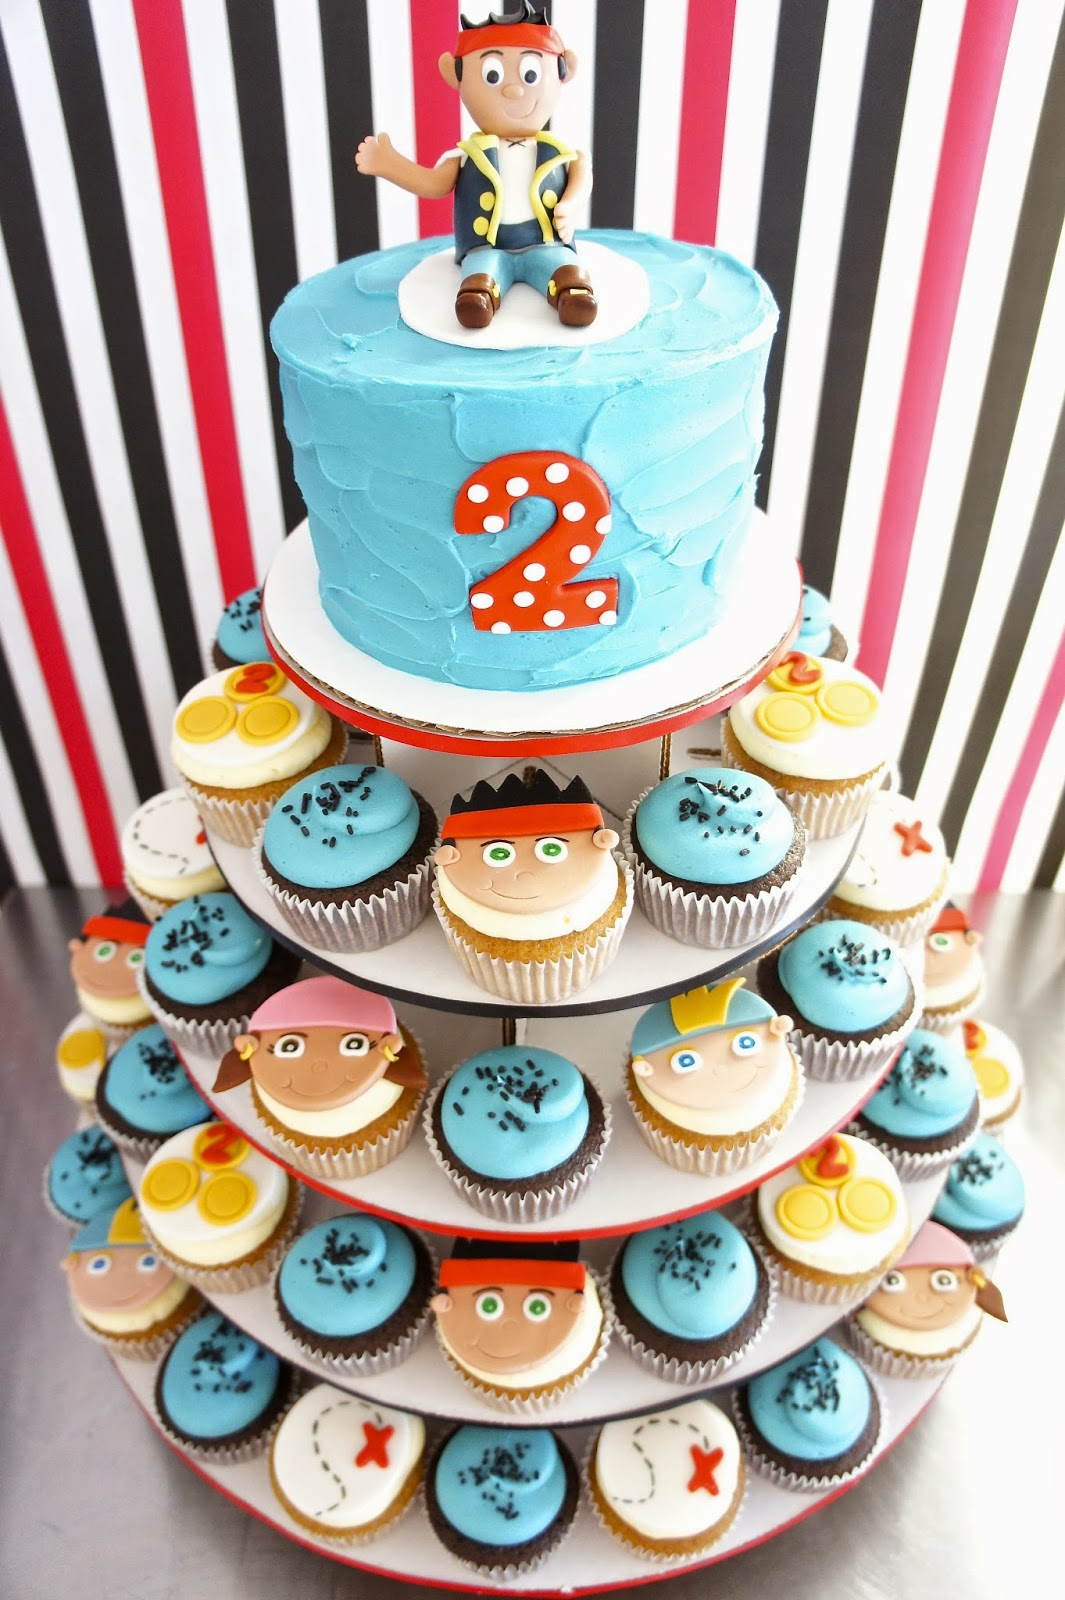 jake and the neverland pirates cupcakes - photo #8